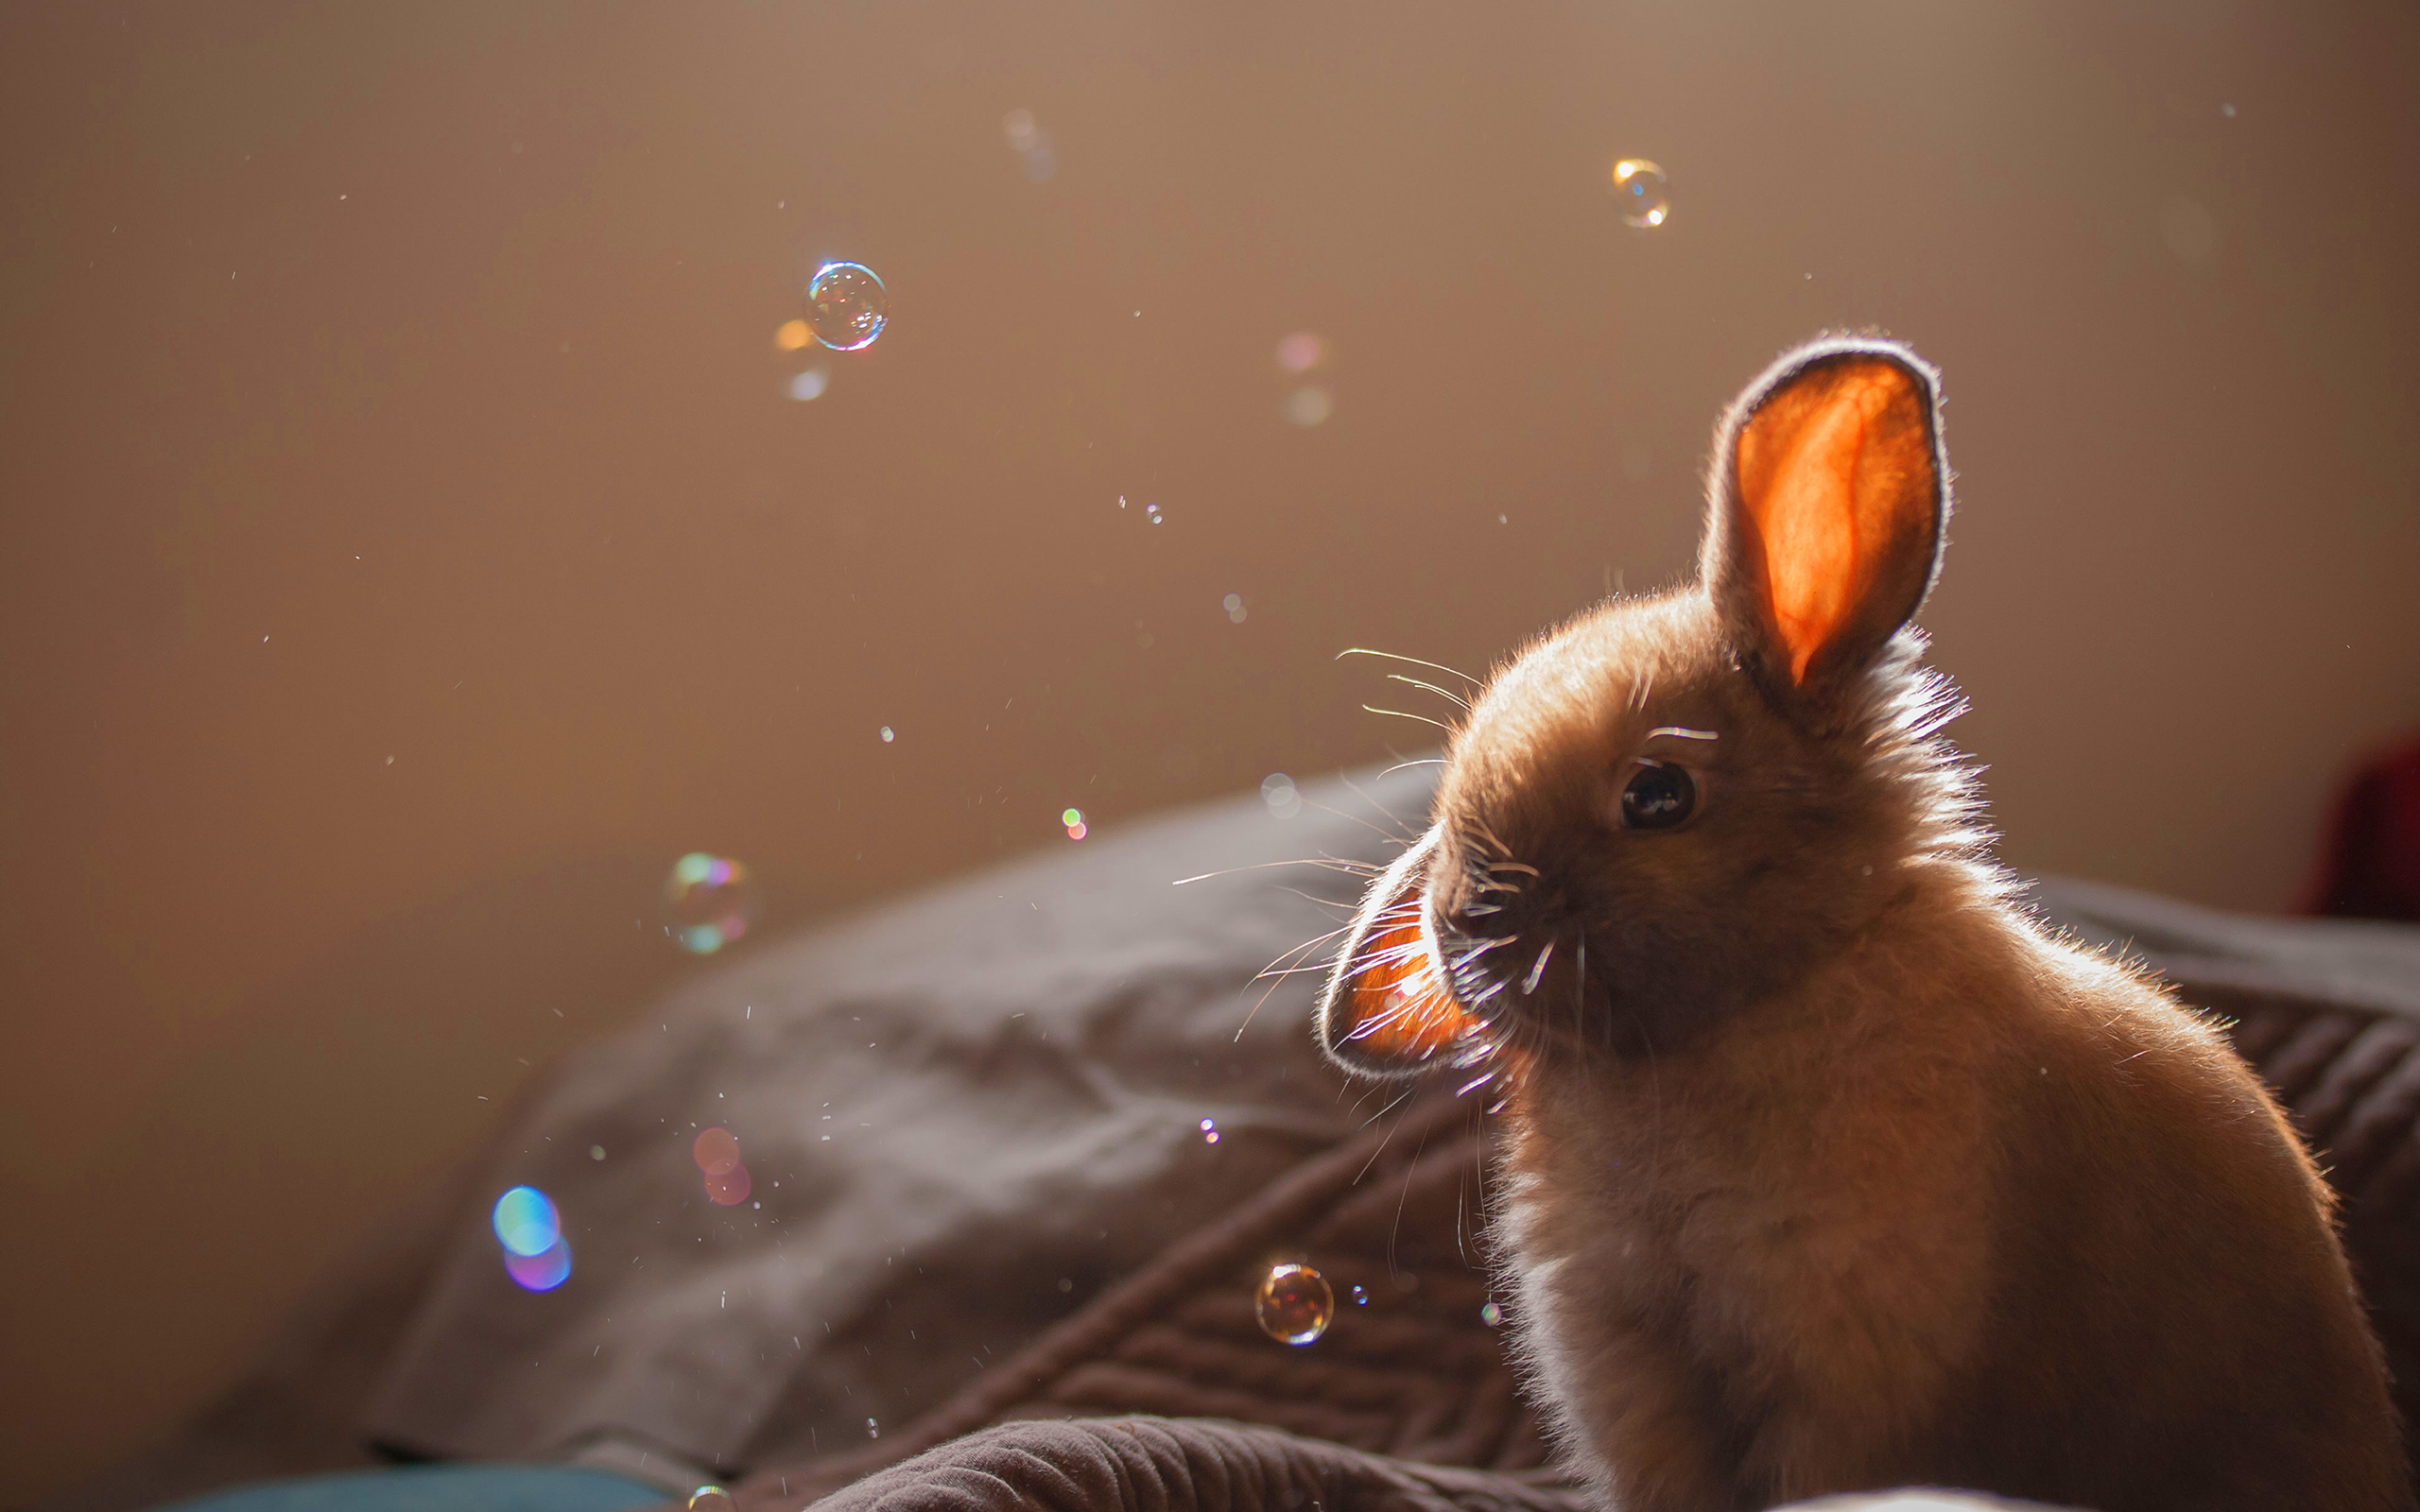 rabbit hd wallpaper